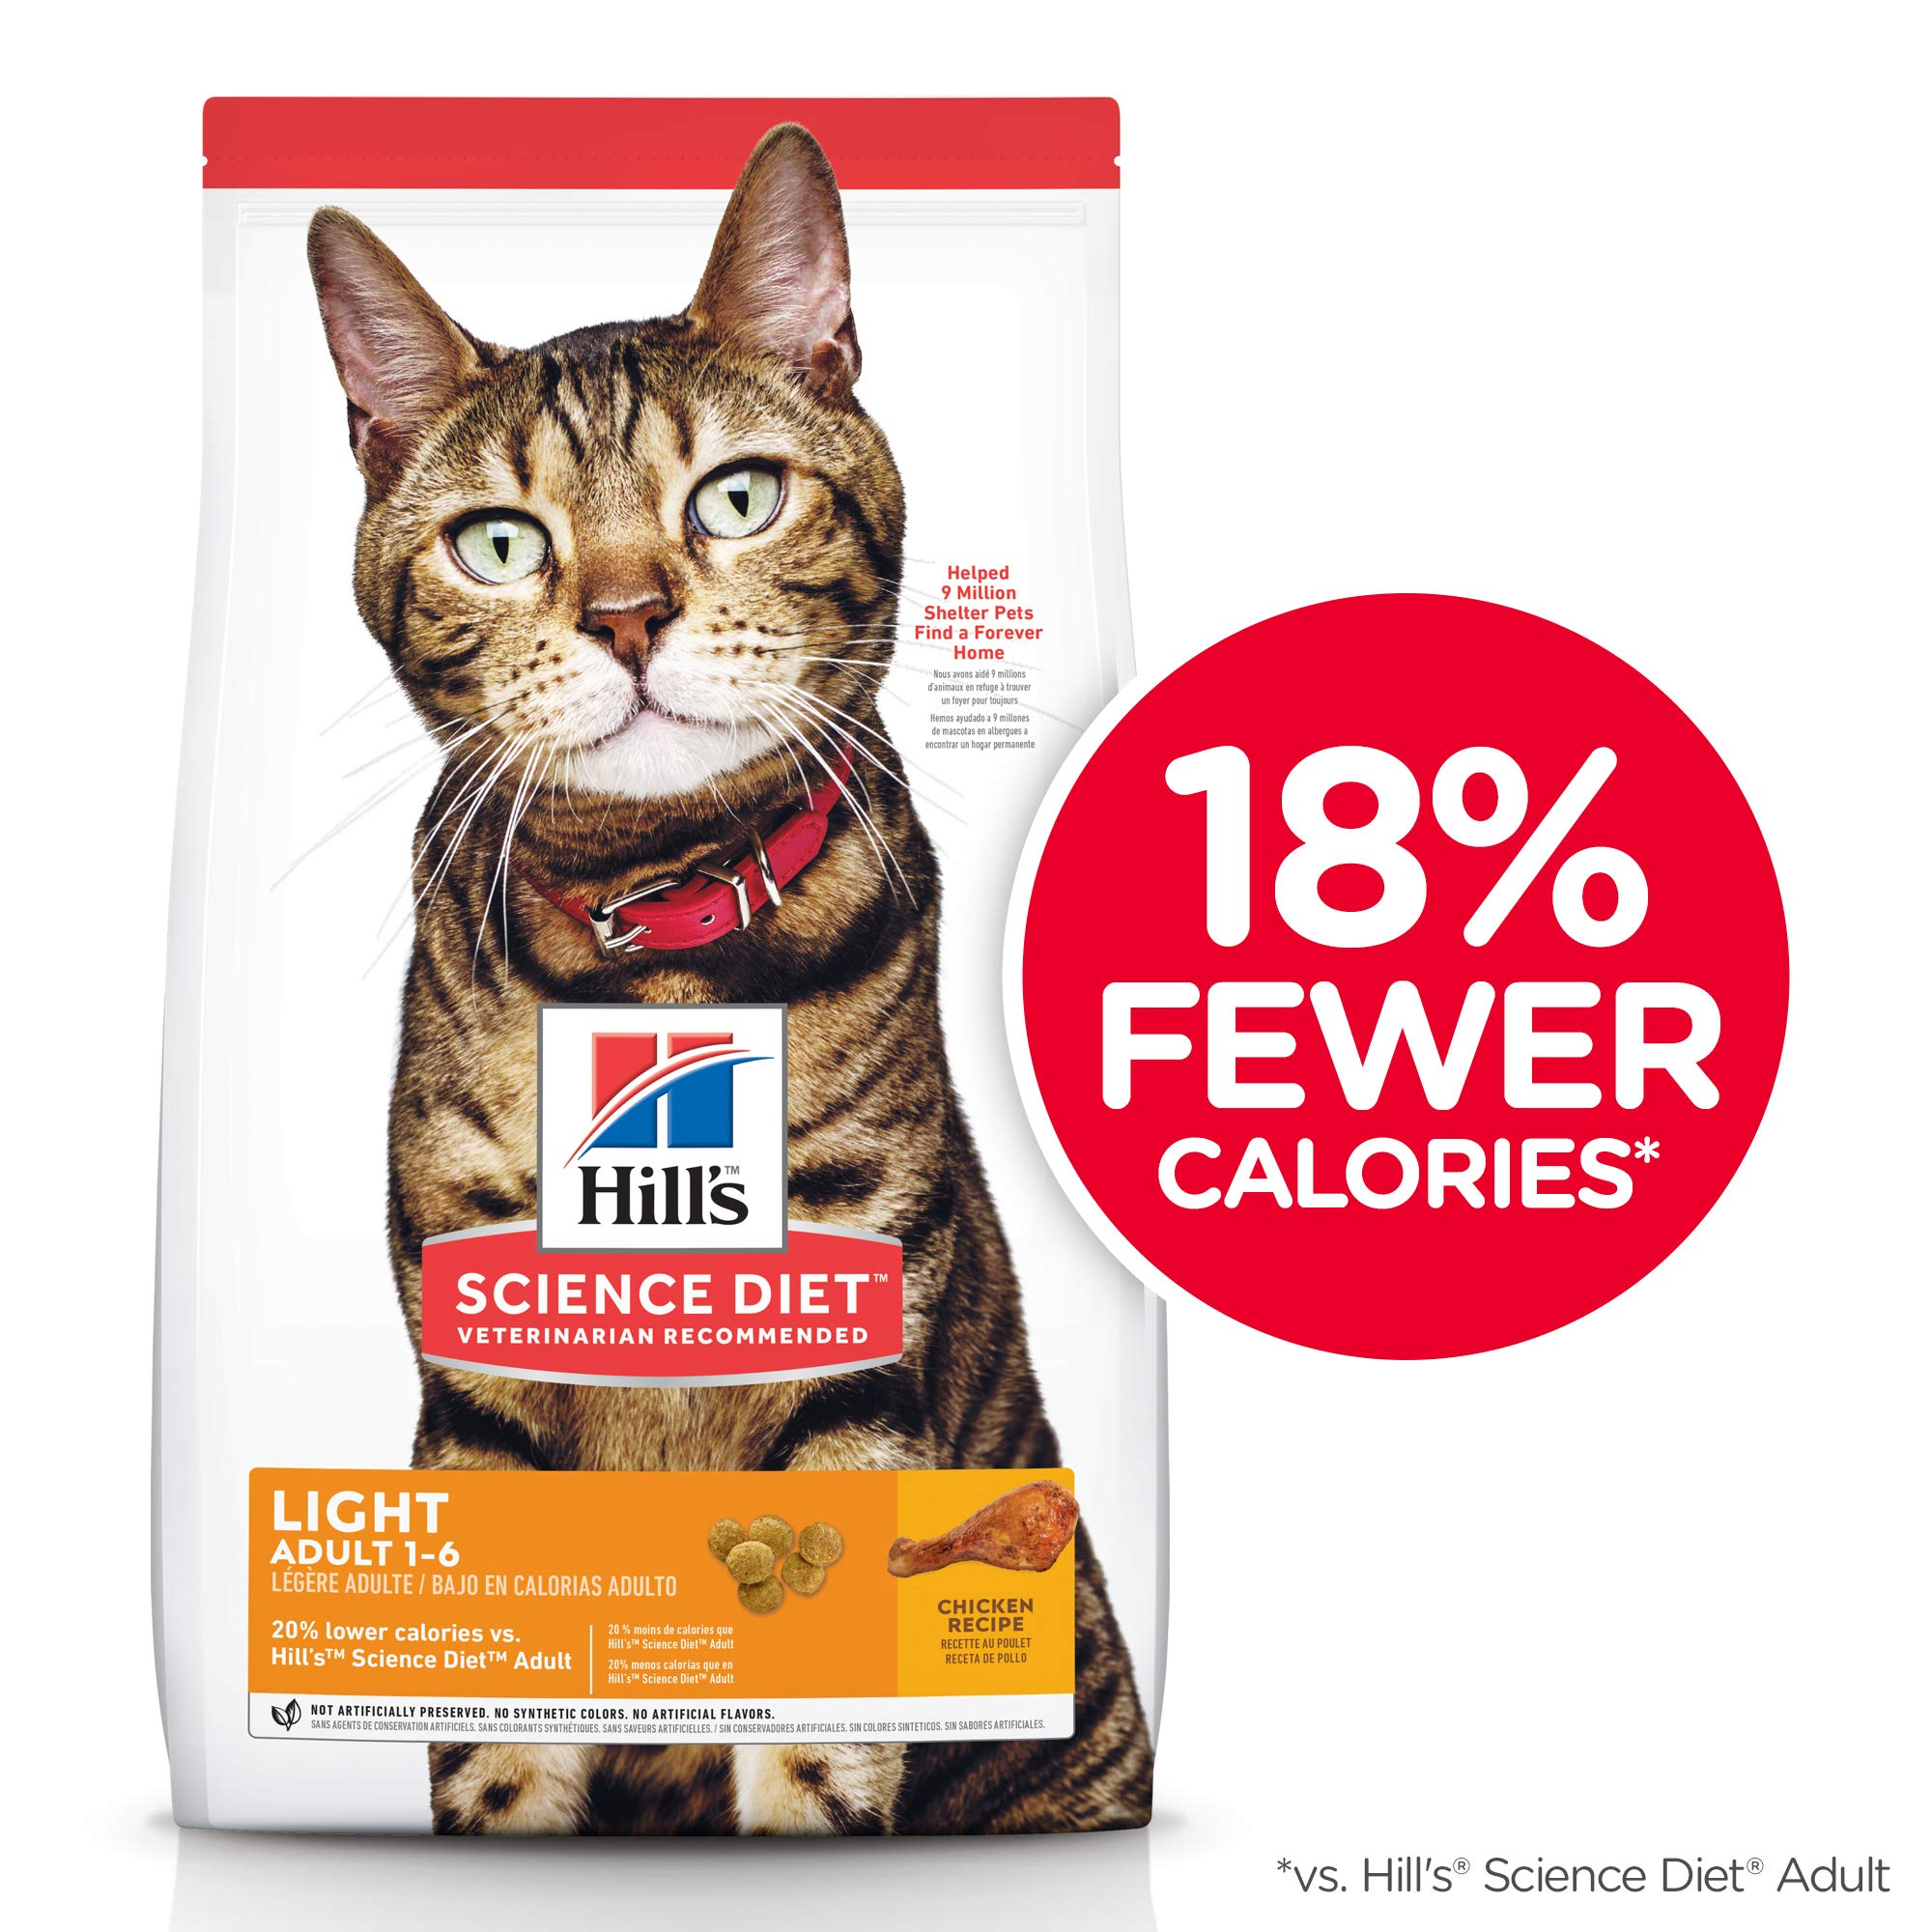 Hill's Science Diet Dry Cat Food, Adult, Light for Healthy Weight & Weight Management, Chicken Recipe, 16 lb Bag